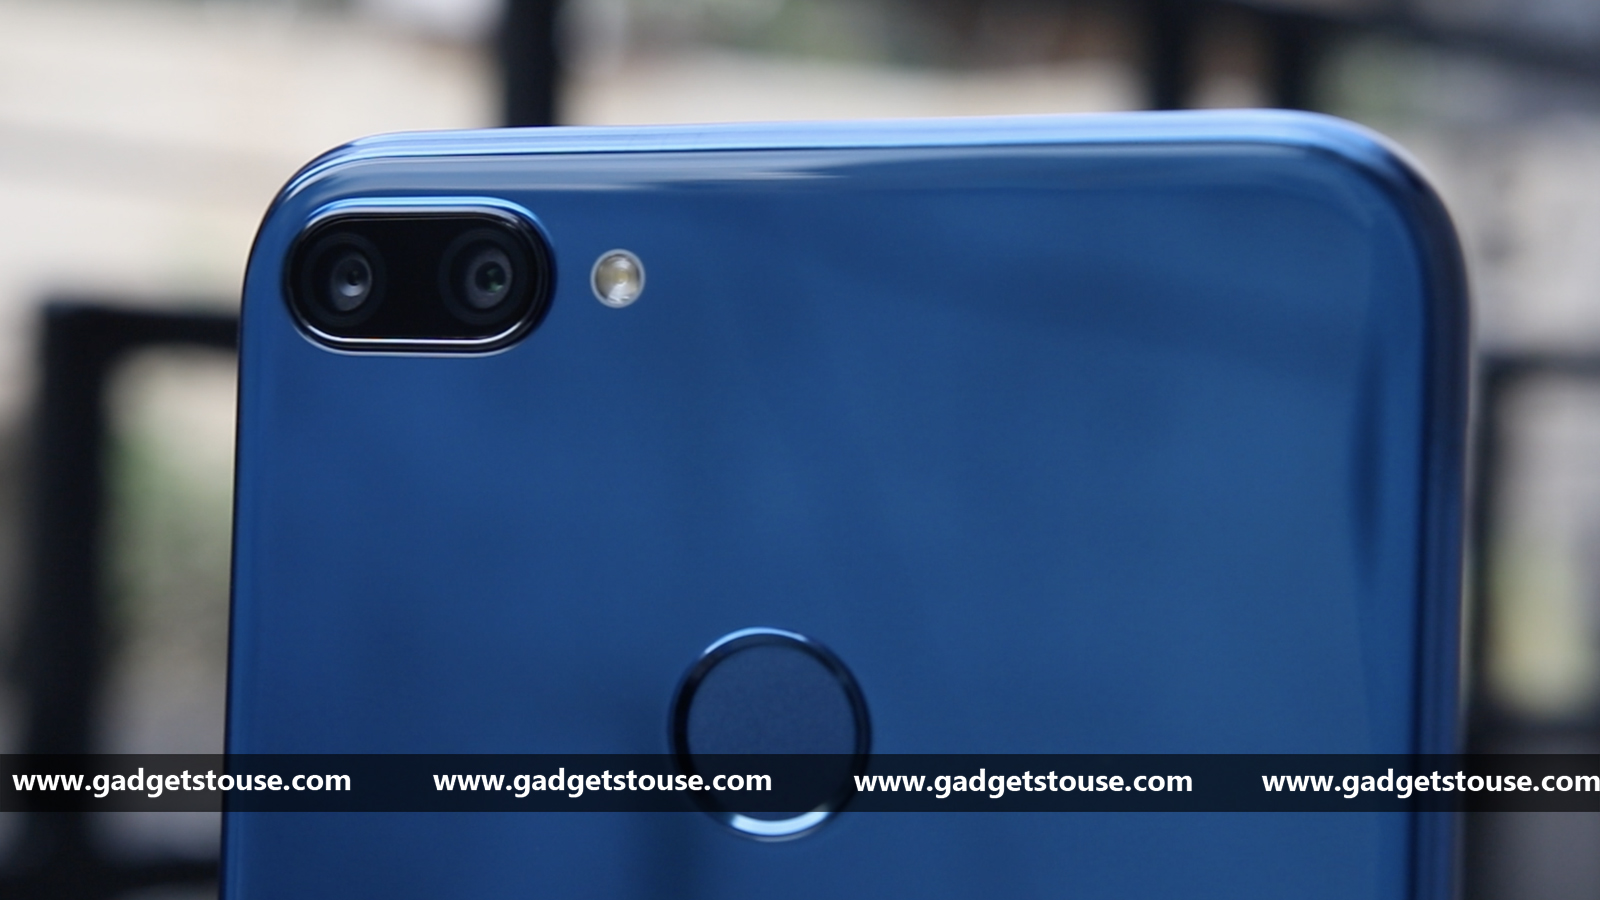 - 4 1 - Everything you should know about the latest budget phone